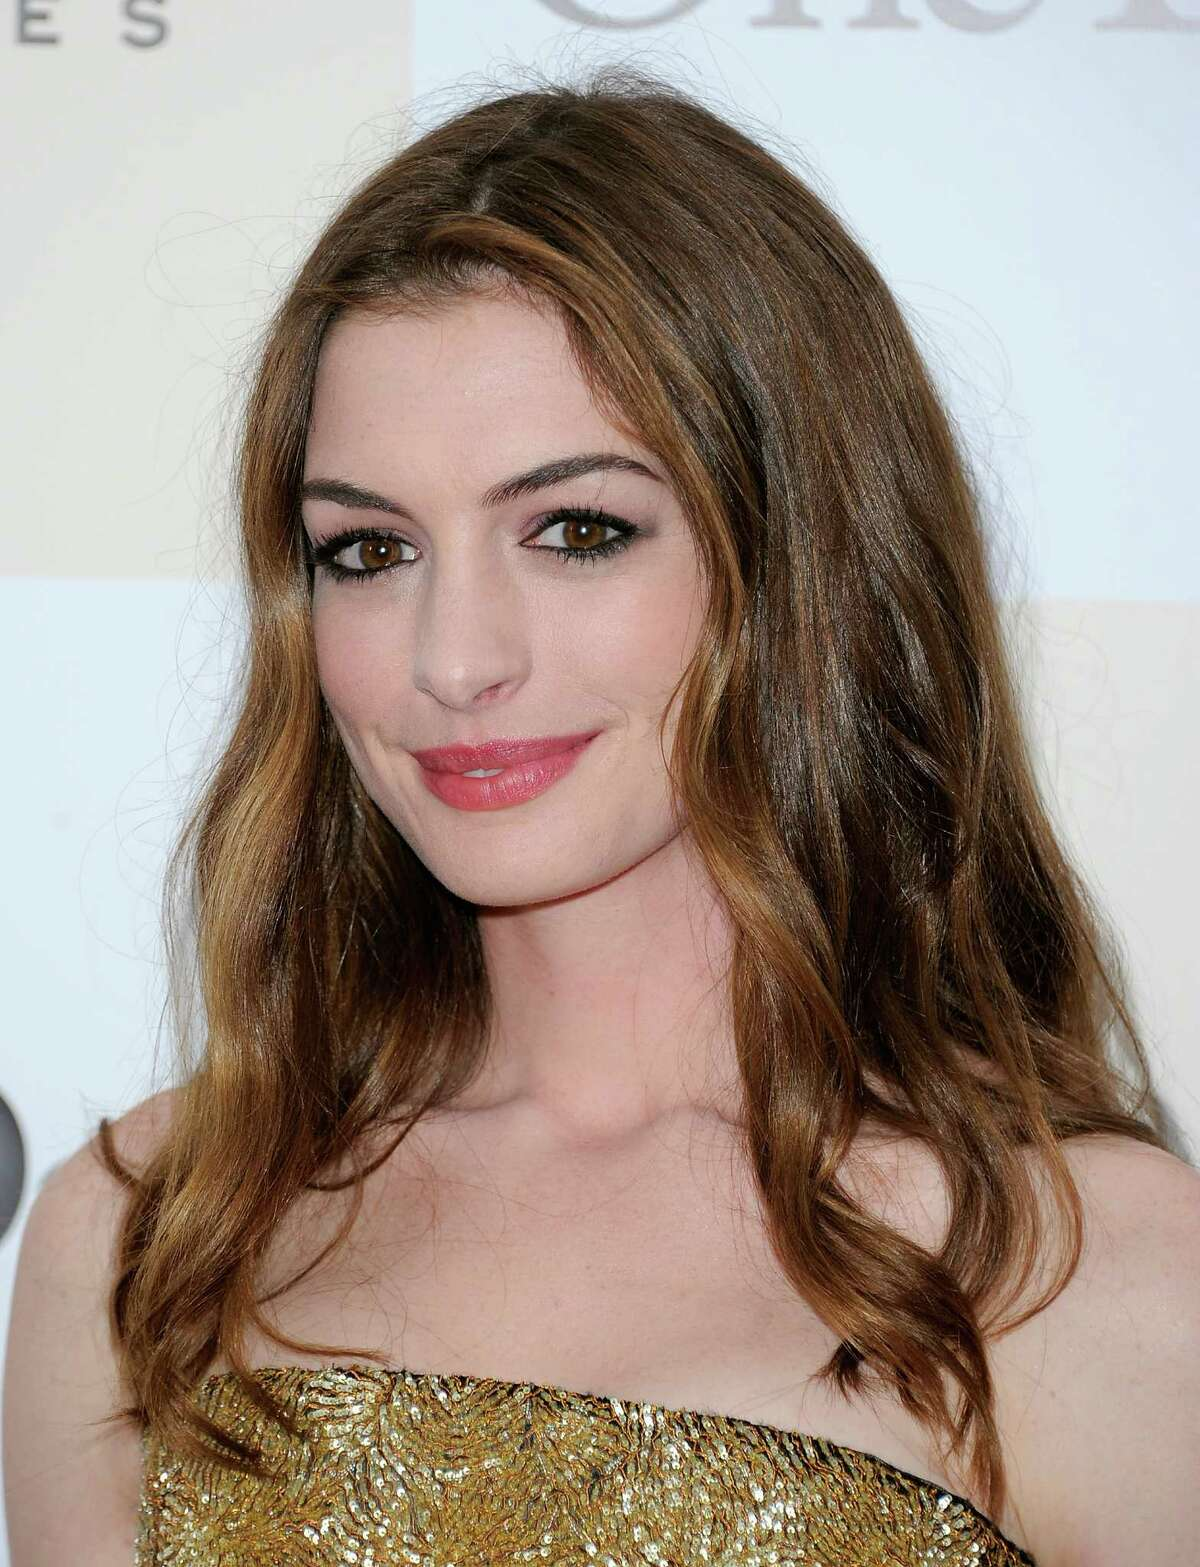 """Anne Hathaway recently said that she lost too much weight - 25 pounds - for her role as Fantine in """"Les Miserables.""""She said, """"I lost the first 10 (pounds) in three weeks through a detox and then I lost the subsequent 15 in 14 days by doing food deprivation and exercise, which I don't recommend."""""""